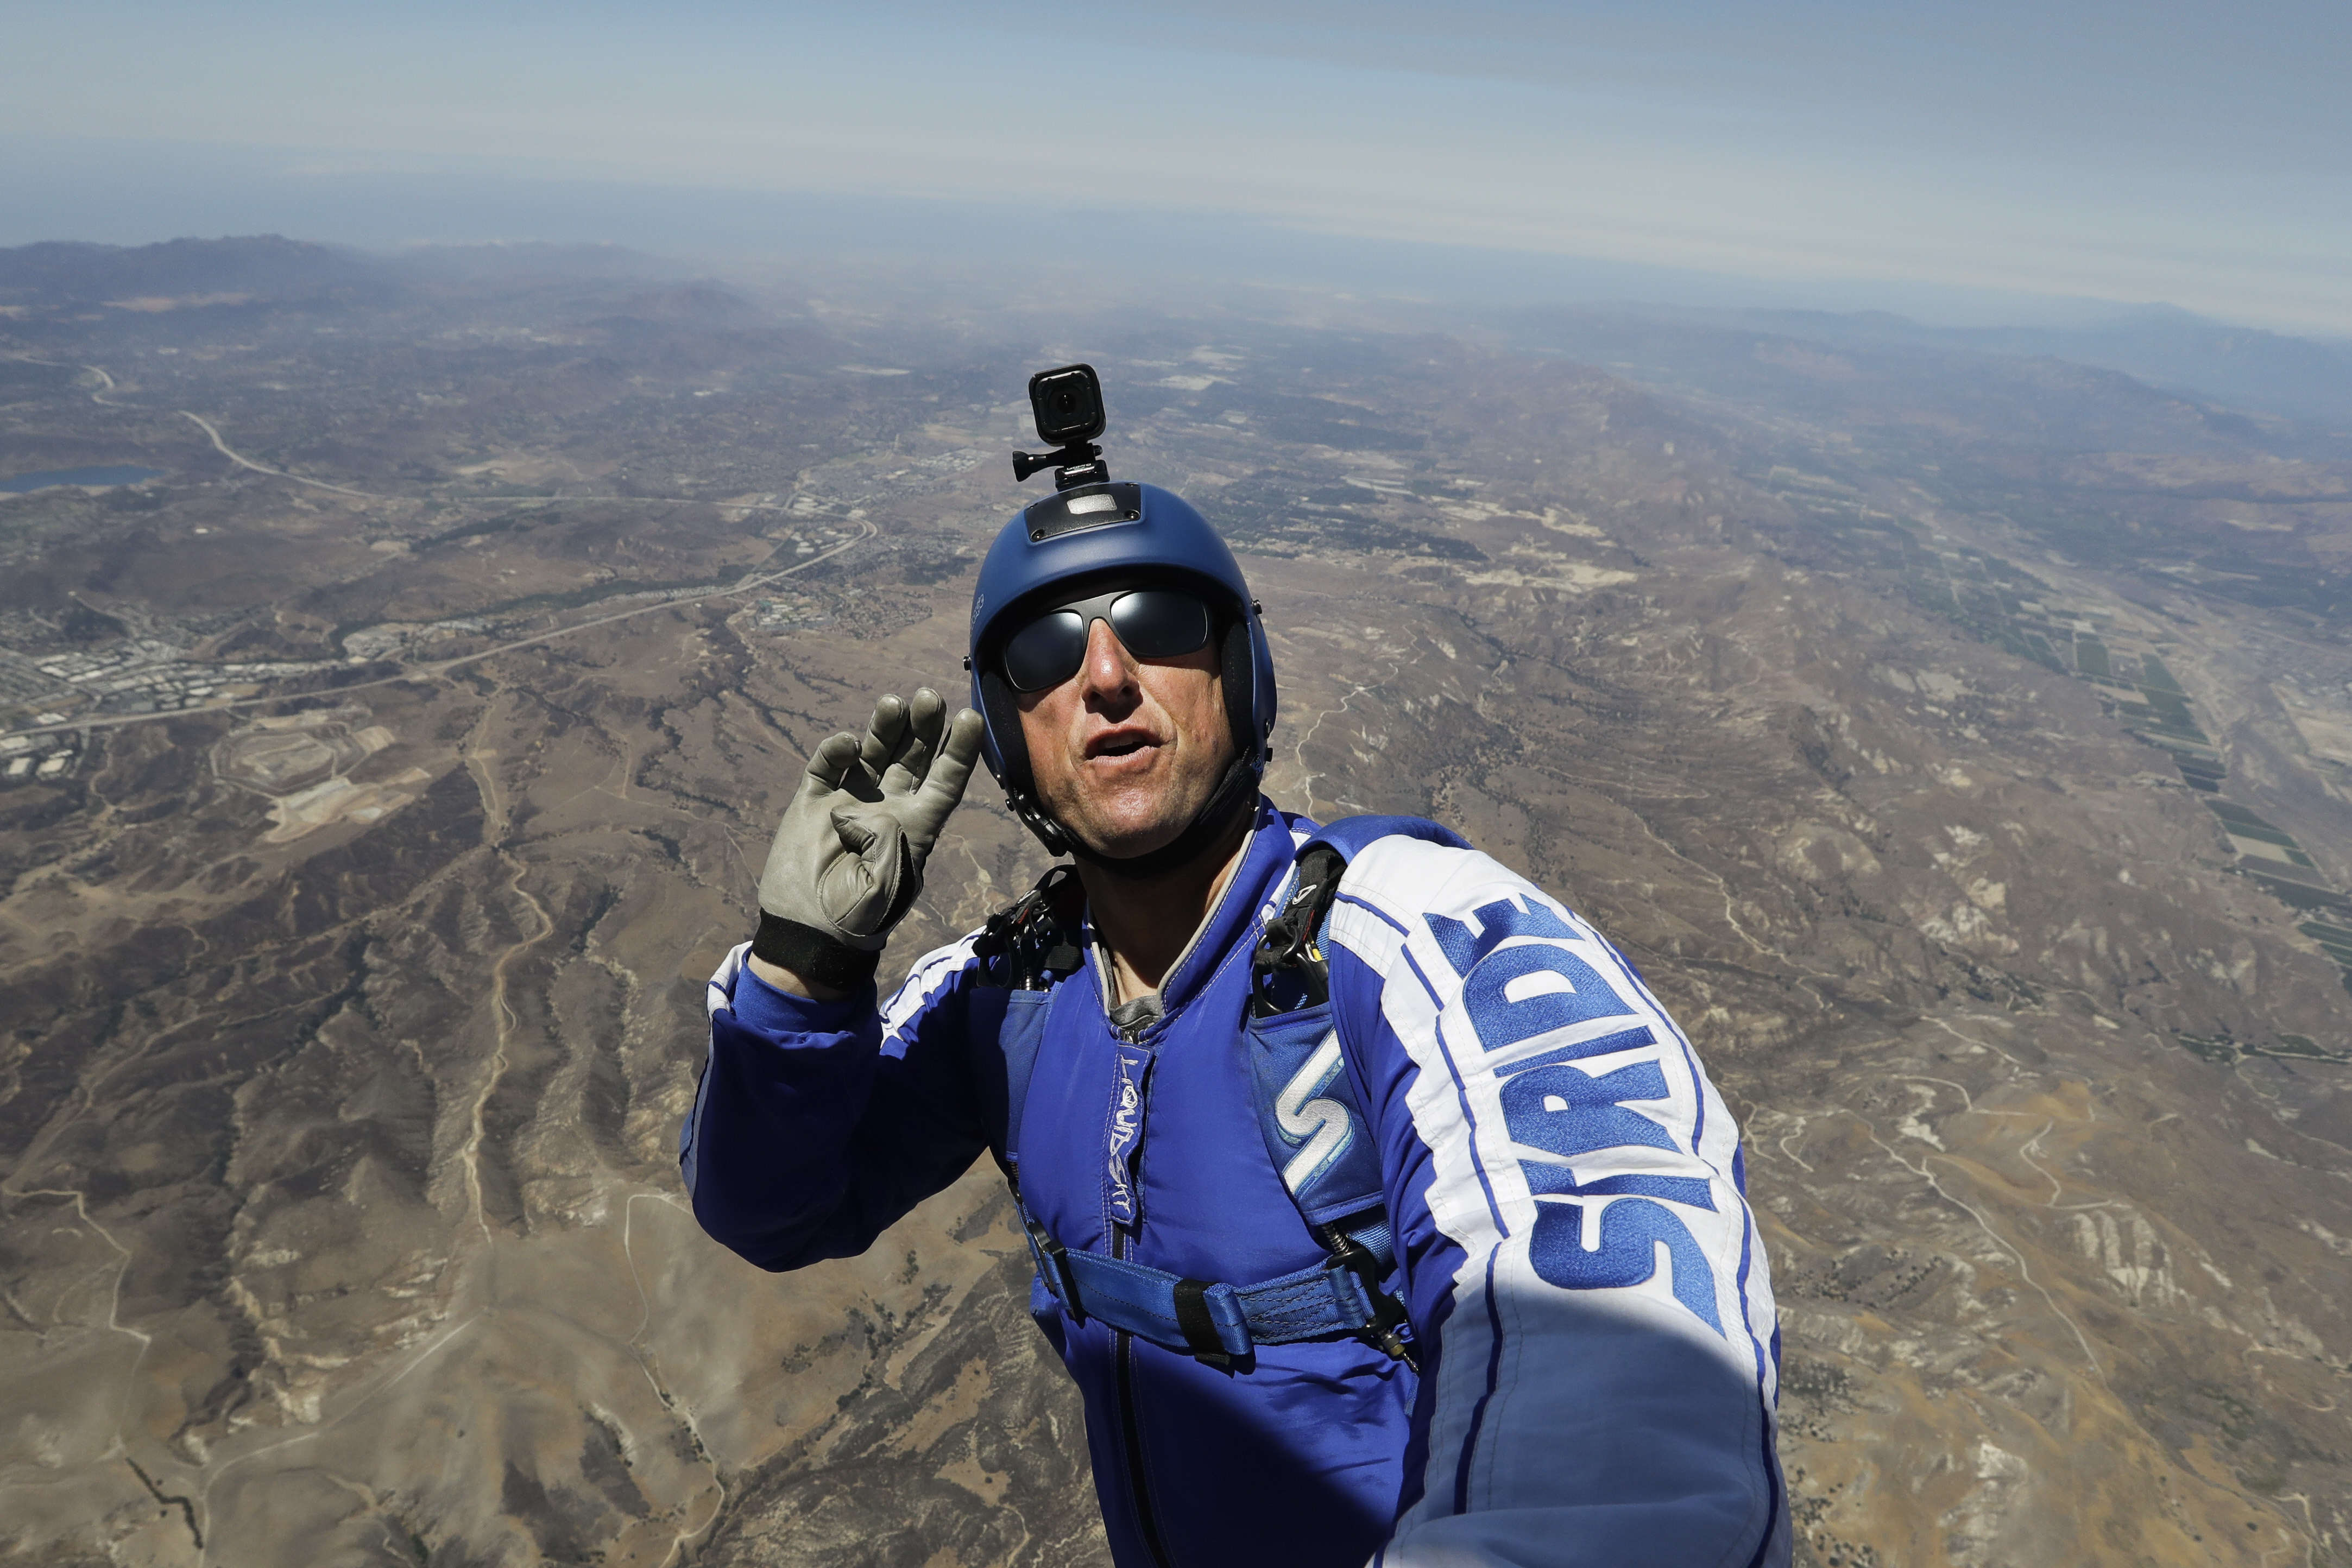 PA 28176089 This Absolute Maniac Just Jumped 25,000ft Out A Plane With No Parachute